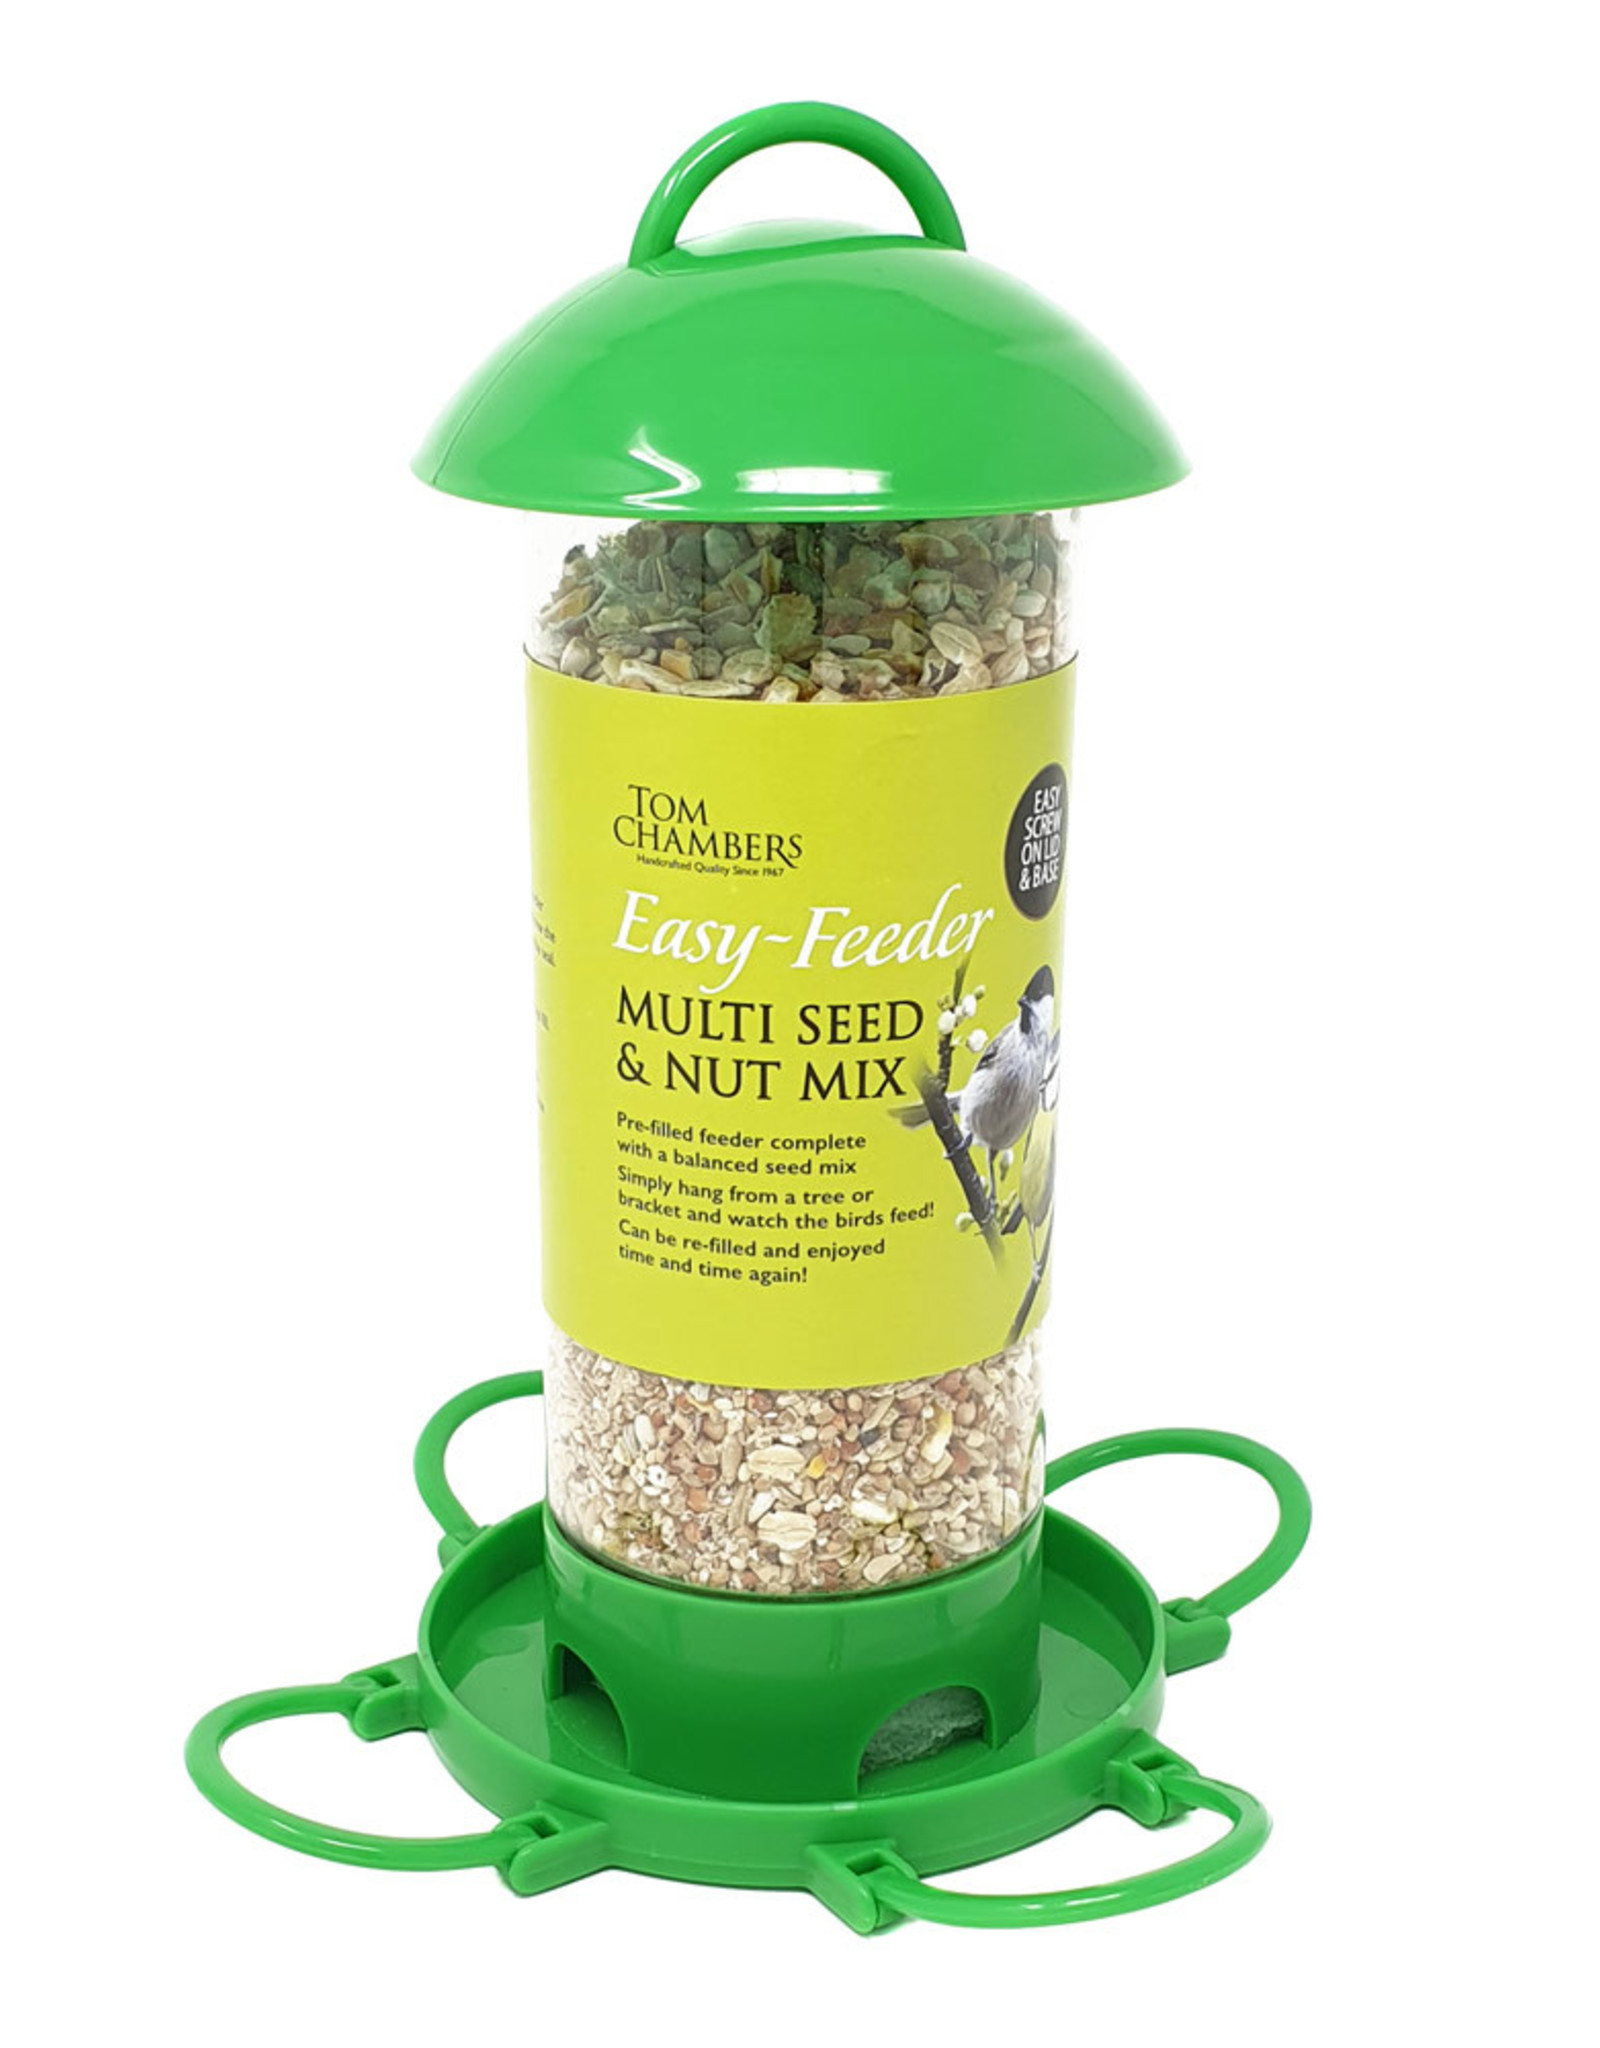 Tom Chambers Easy Feeder Multi Seed and Nut Wild Bid Mix